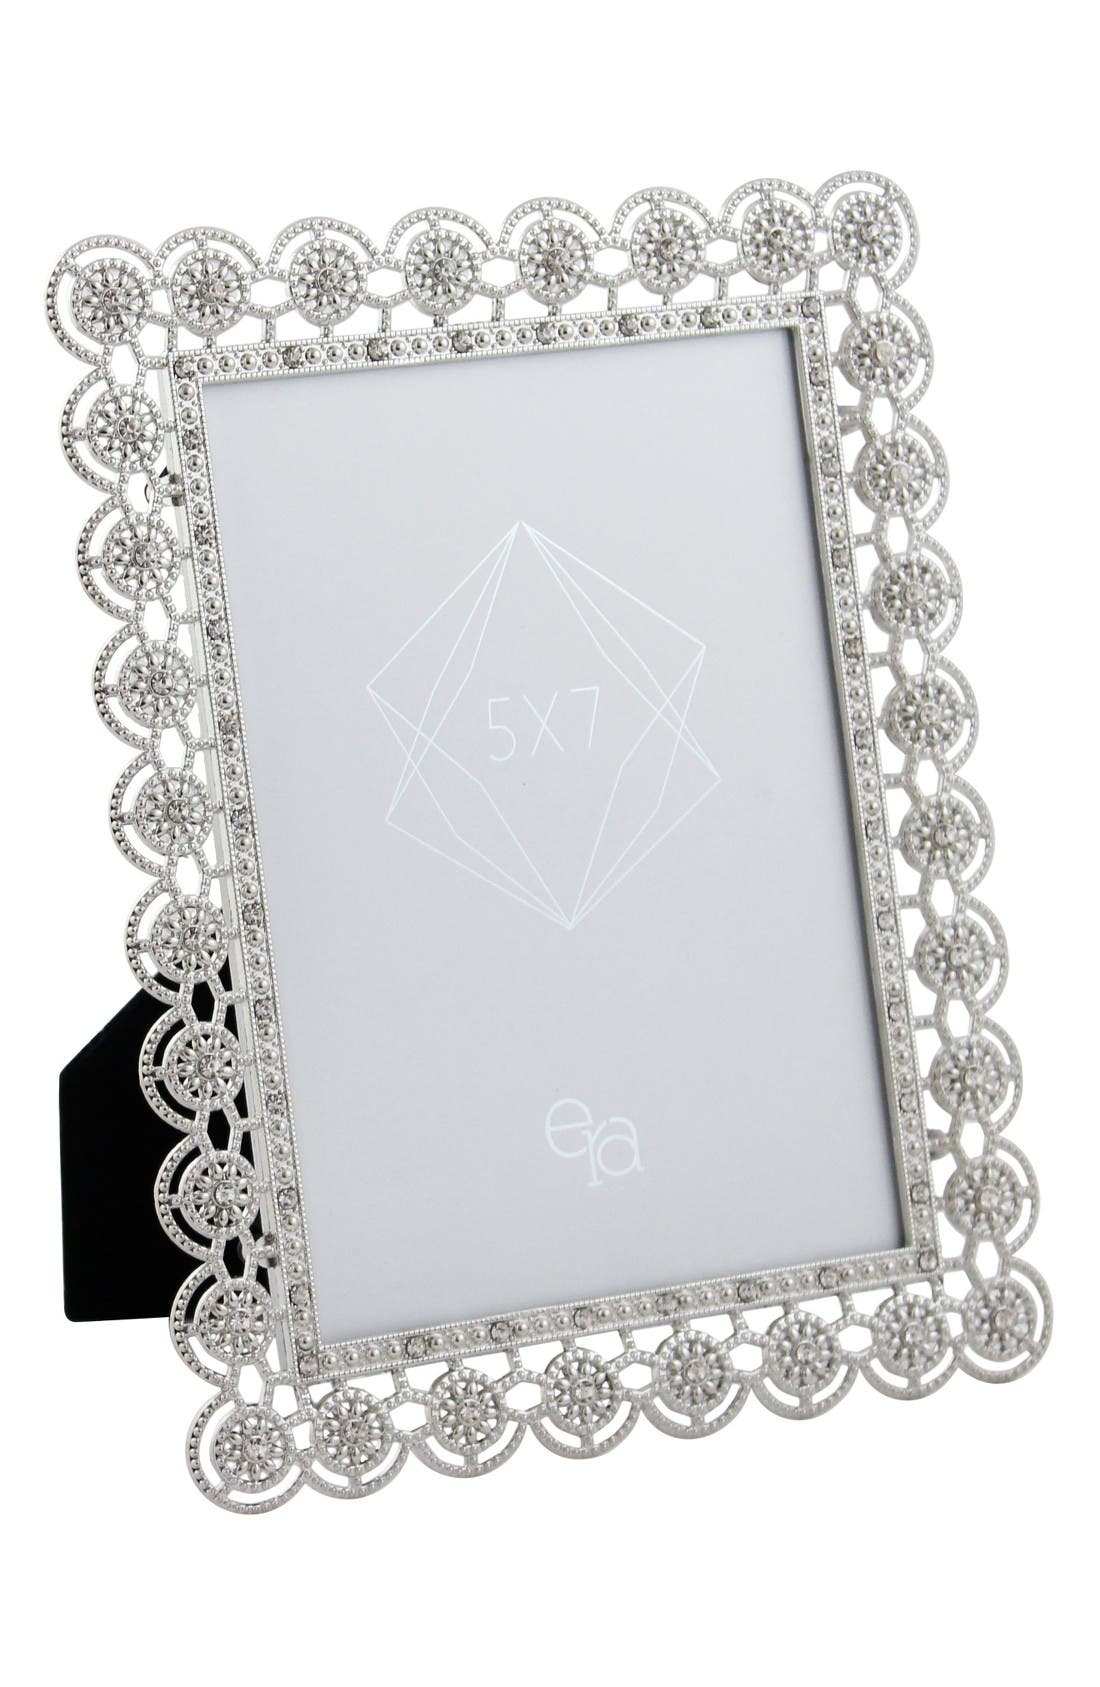 Main Image - Era Home Crystal Picture Frame